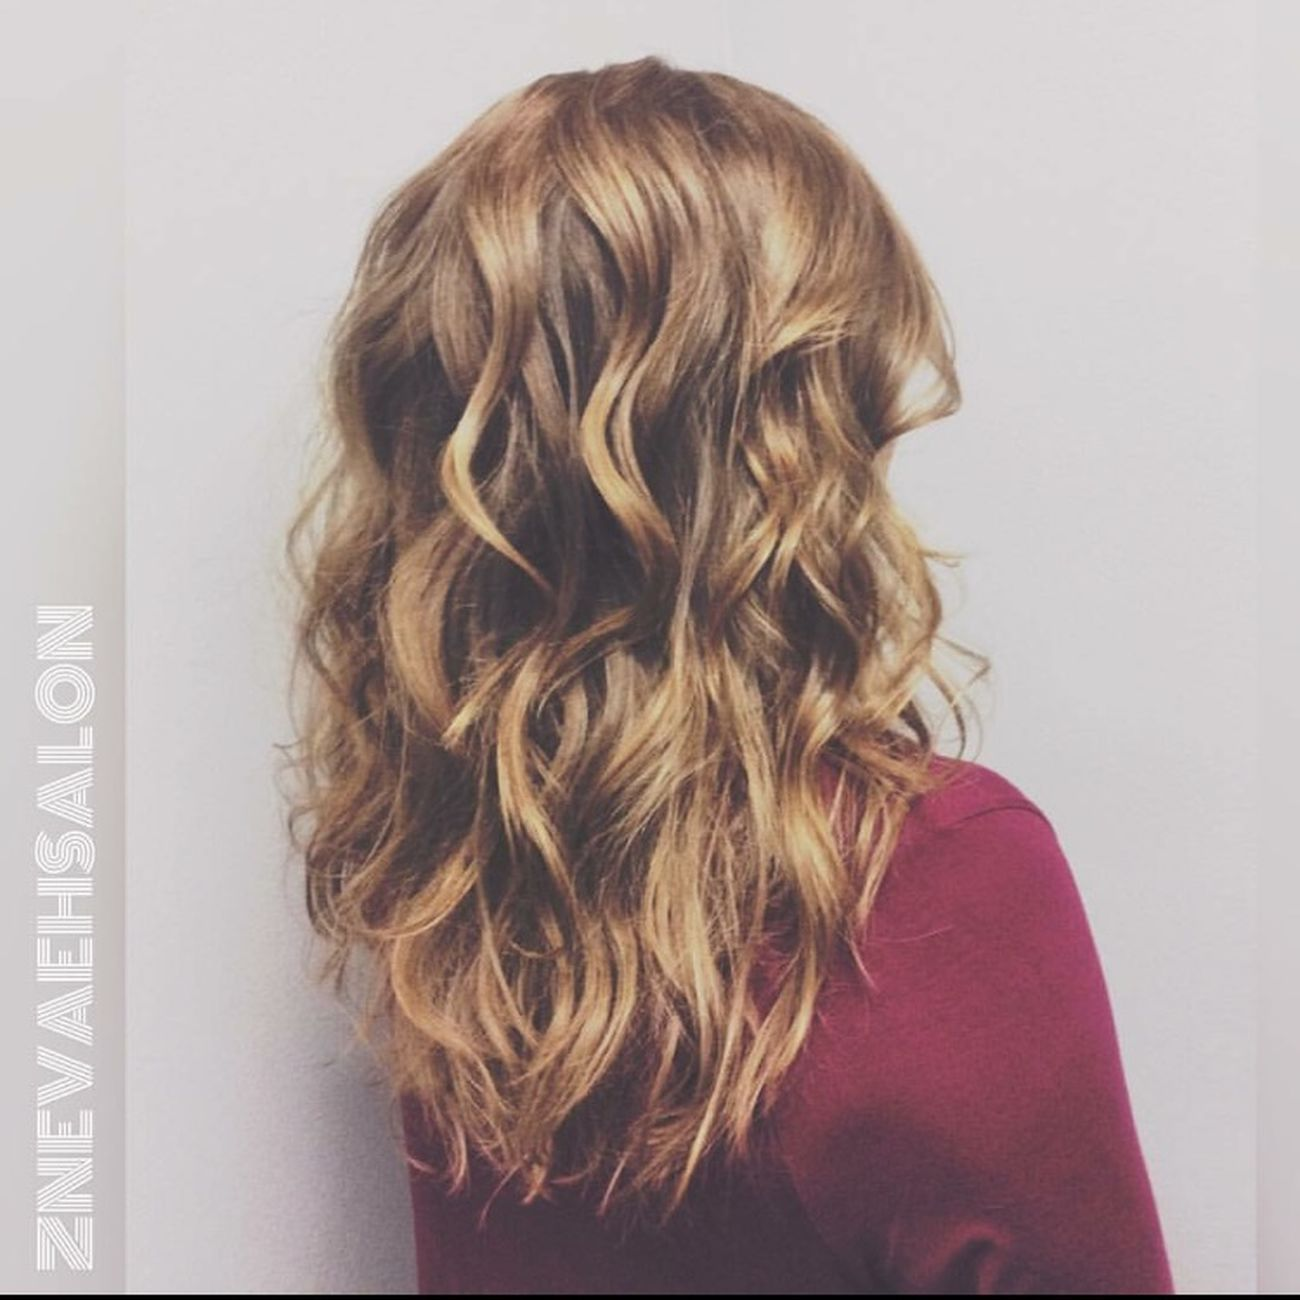 Long Soft Curls @znevaehsalon @lorealprous Check This Out Long Hair .#curls Festivalwaves Fashion #style #stylish #love #TagsForLikes #me #cute #photooftheday #nails #hair #beauty #beautiful #instagood #instafashion # Fashion Hair L'Oreal Professionnel Z Nevaeh Salon Hairtrends Knoxville Salon Haircut Lorealprofessionnelsalon Salonlife Hairstyle Tecni.art